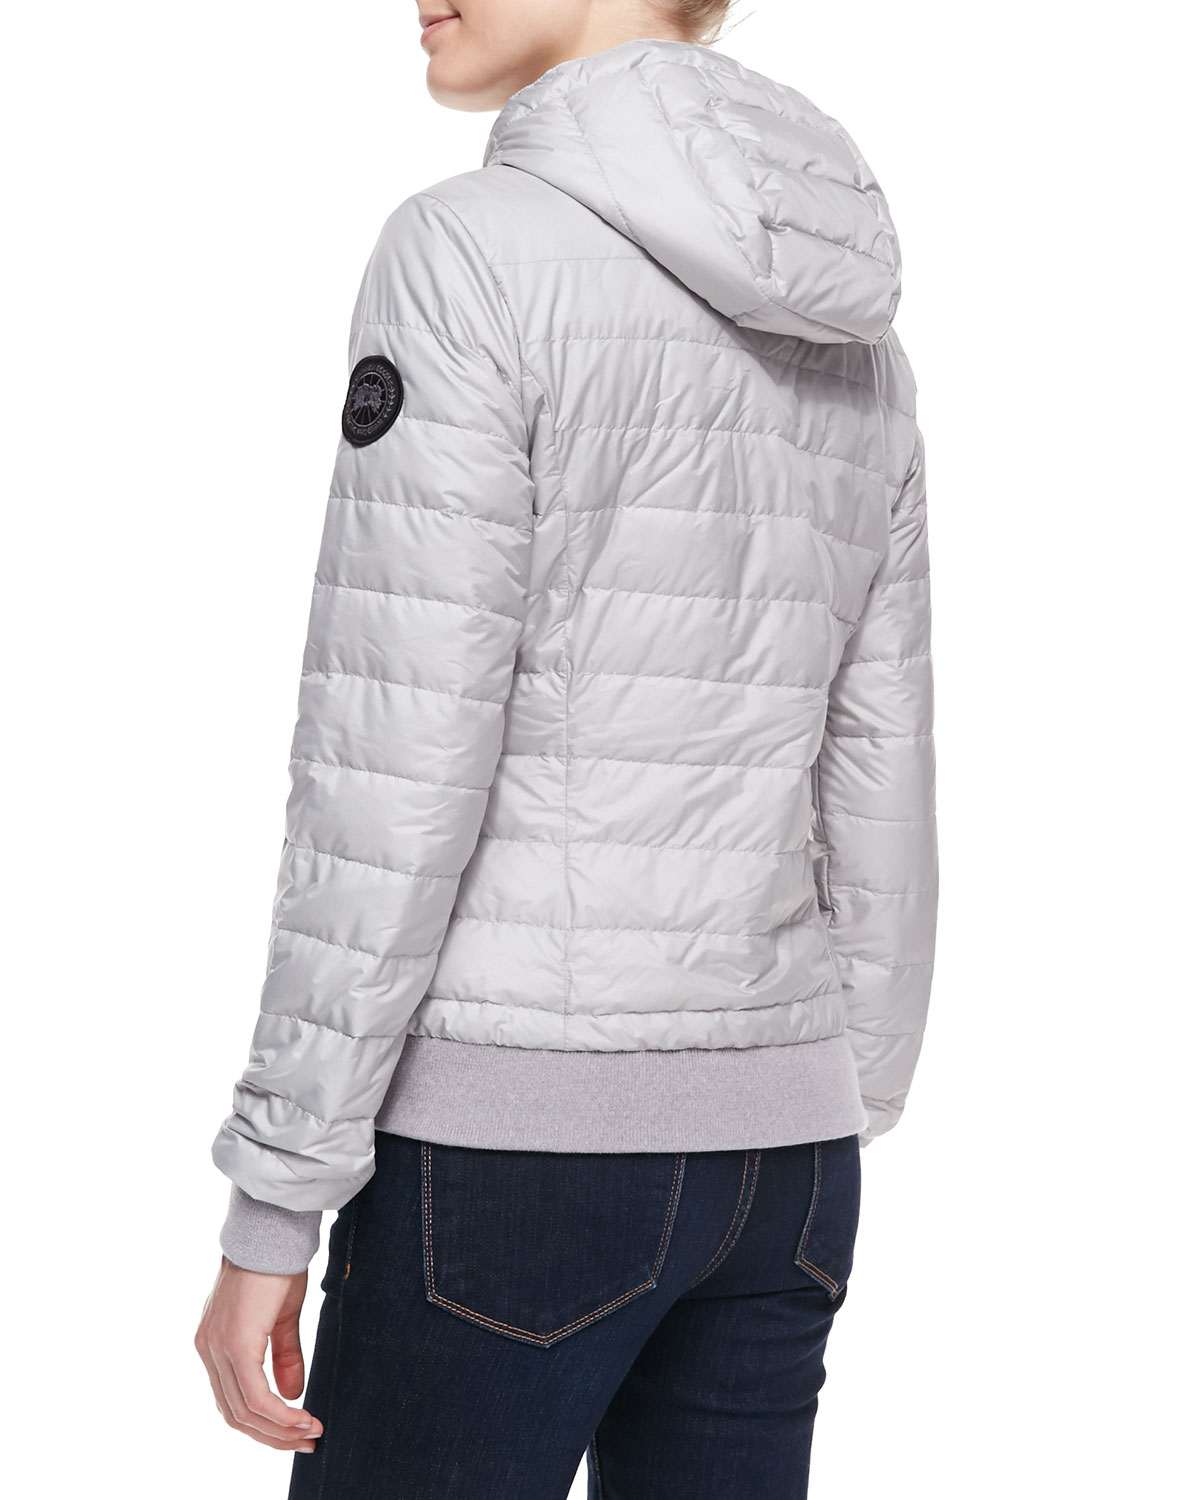 27bf3c99f63b ... inexpensive lyst canada goose sydney hoodie jacket silverbirch in  metallic f0160 d9470